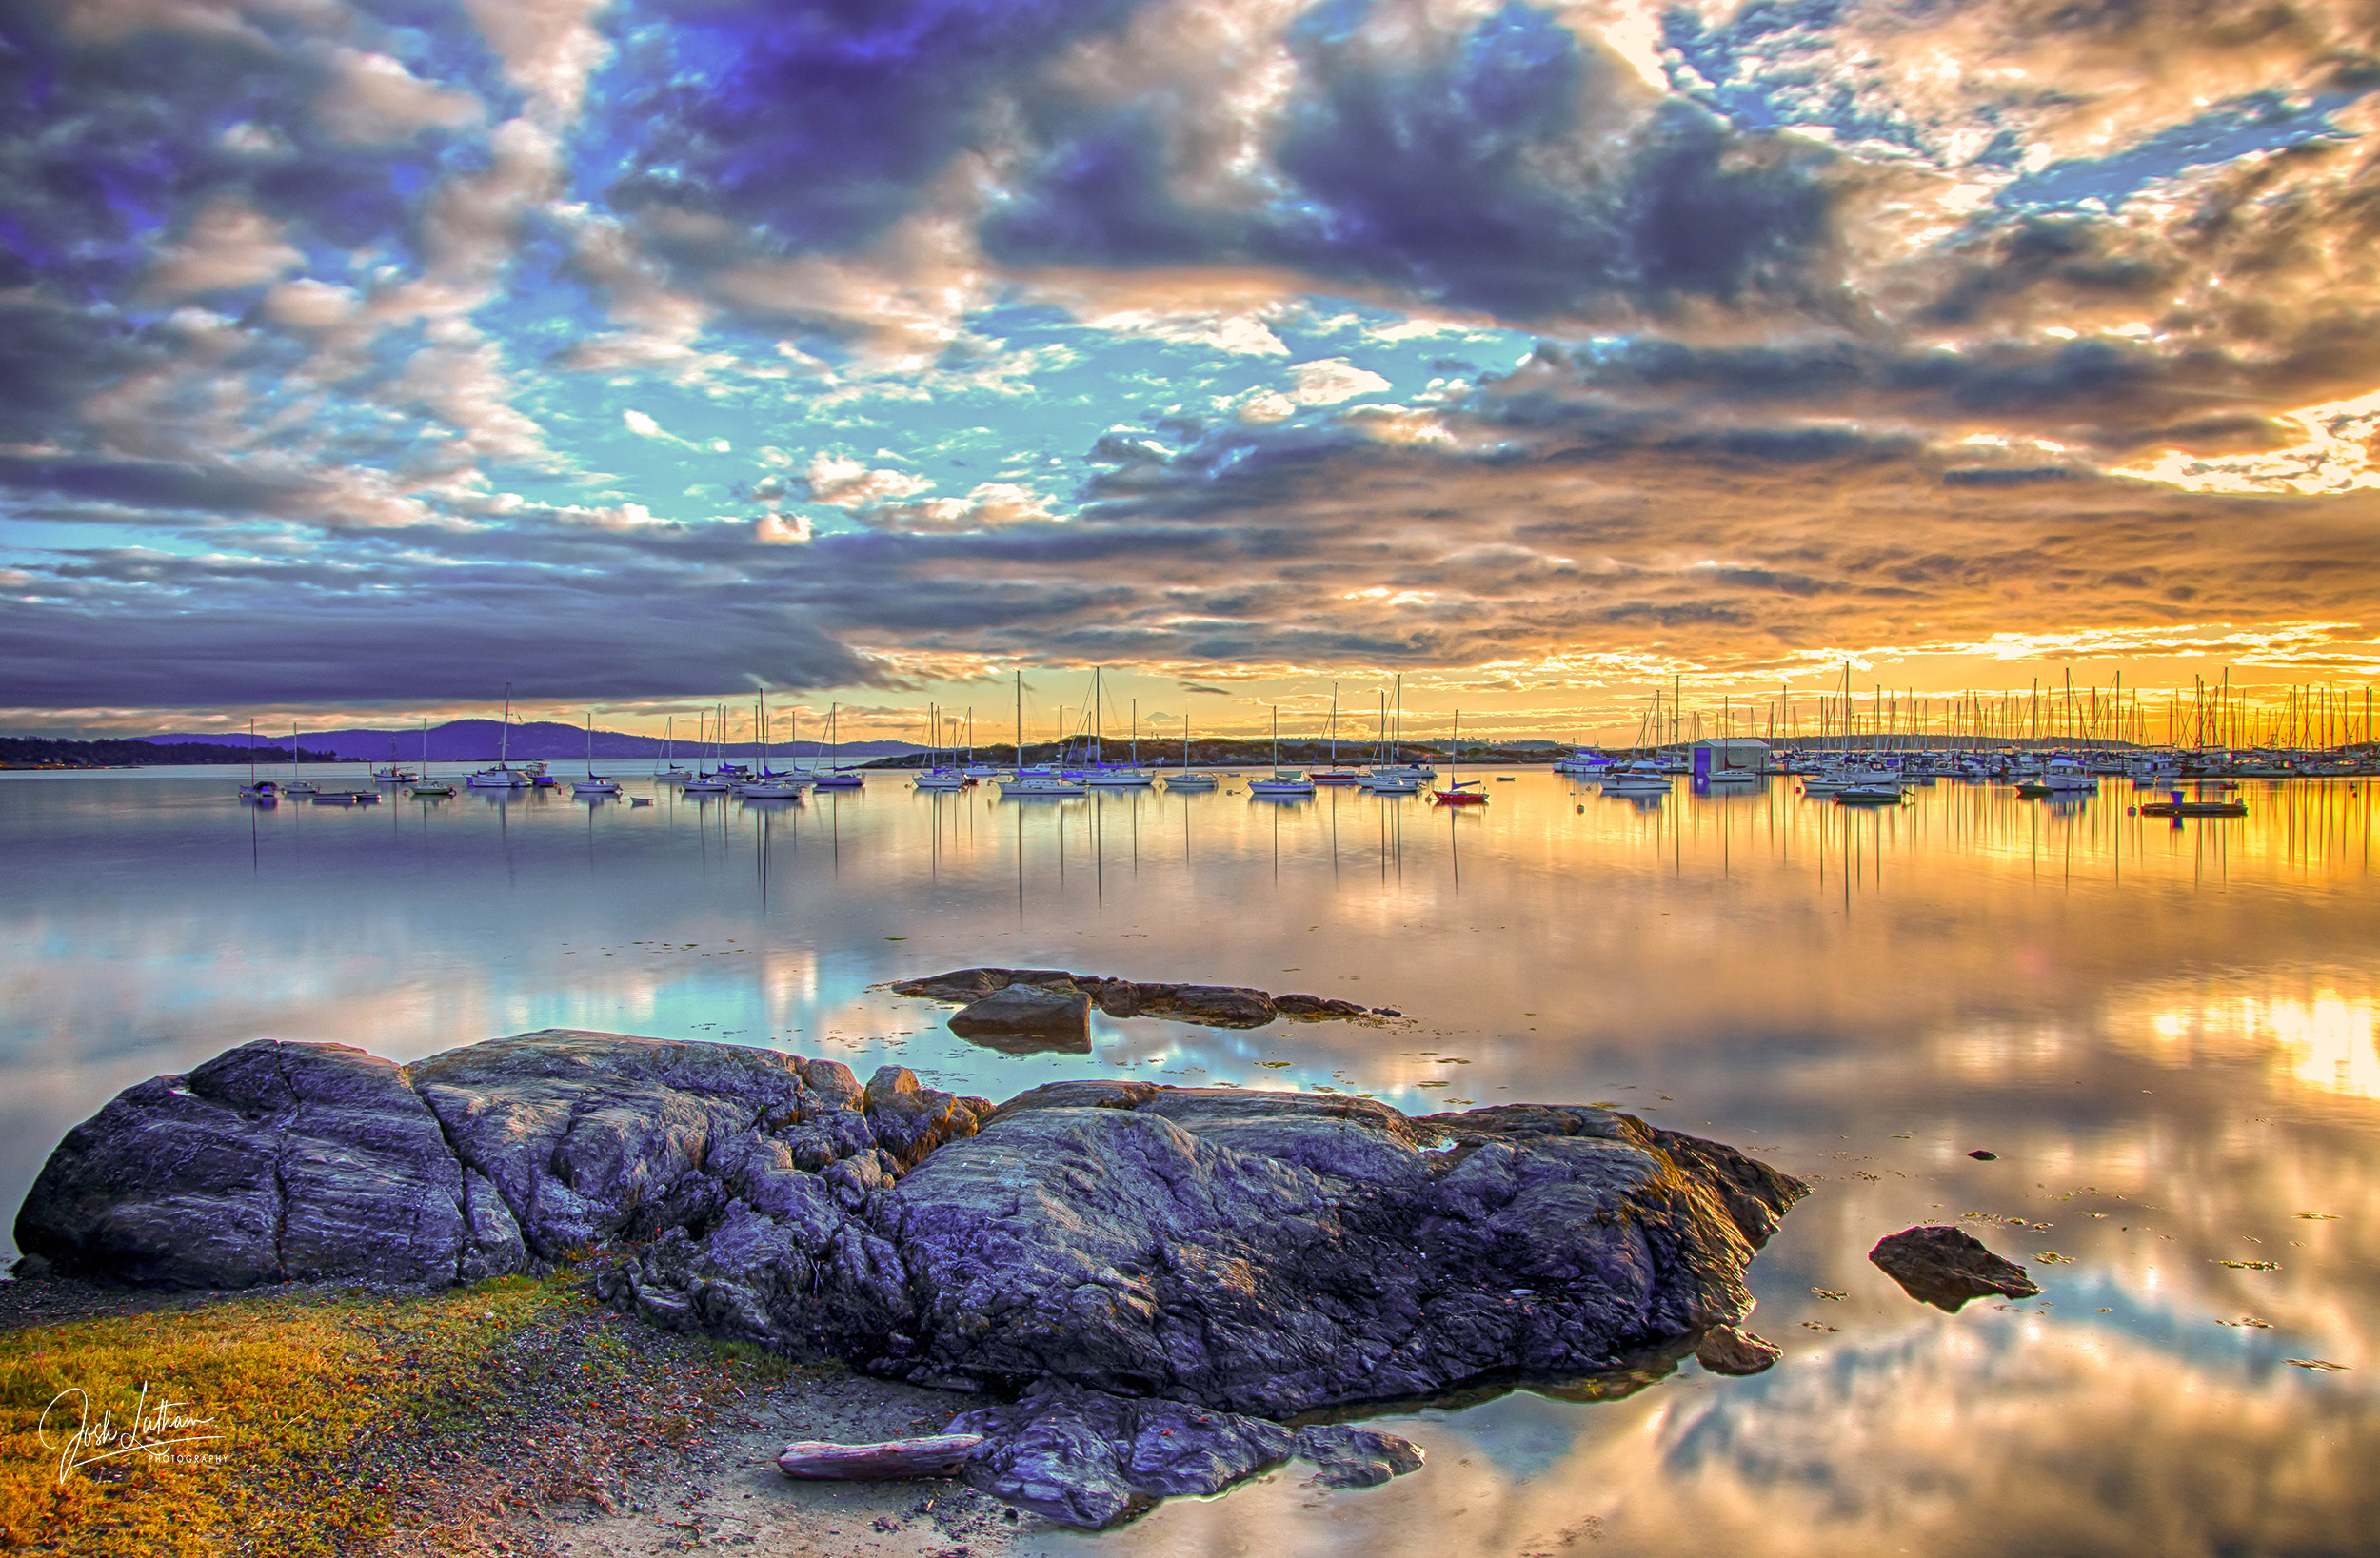 Sunrise at Oak Bay Marina, BC, Canada